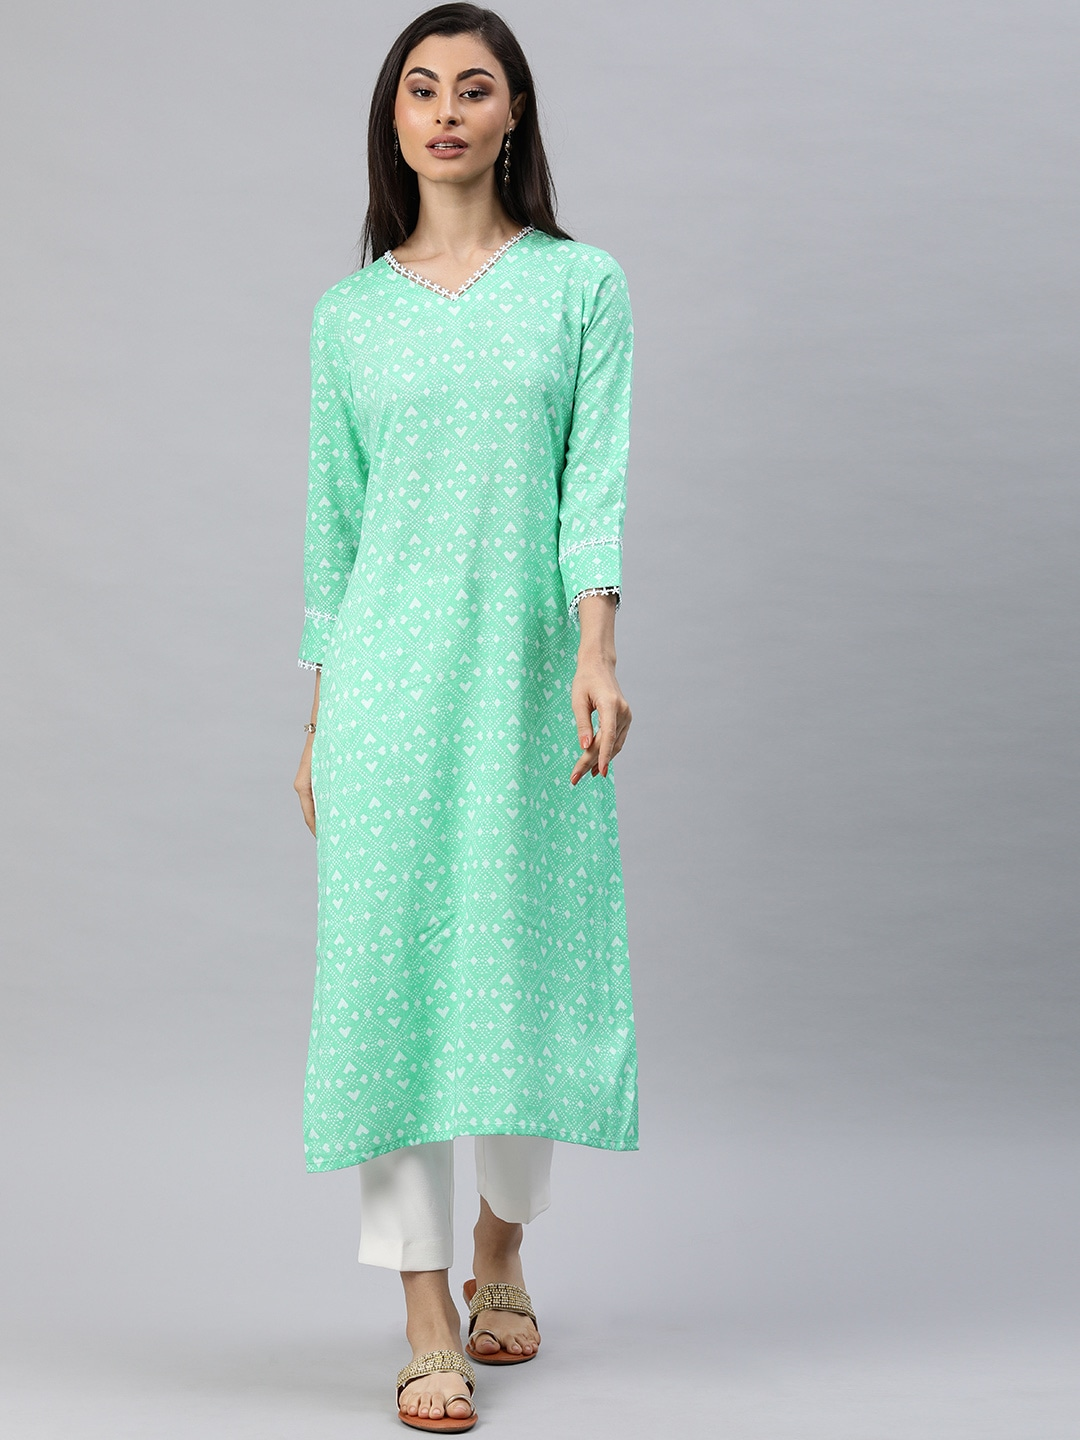 AHIKA Women Green & White Printed A-Line Kurta